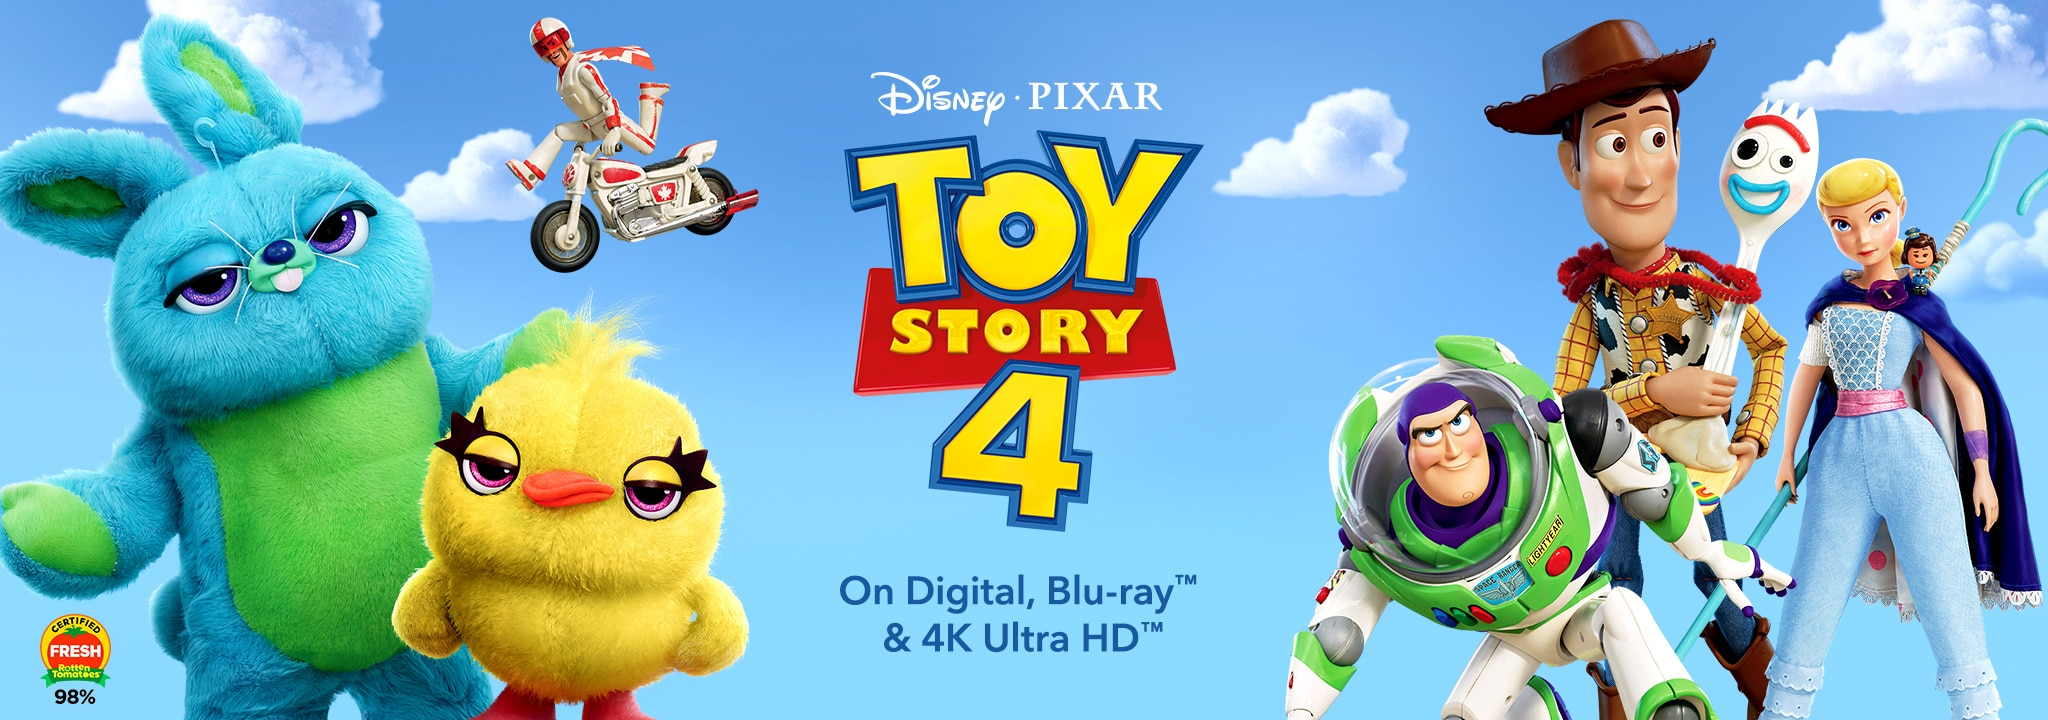 Disney - Pixar: Toy Story 4. On Digital, Blu-ray & 4K Ultra HD